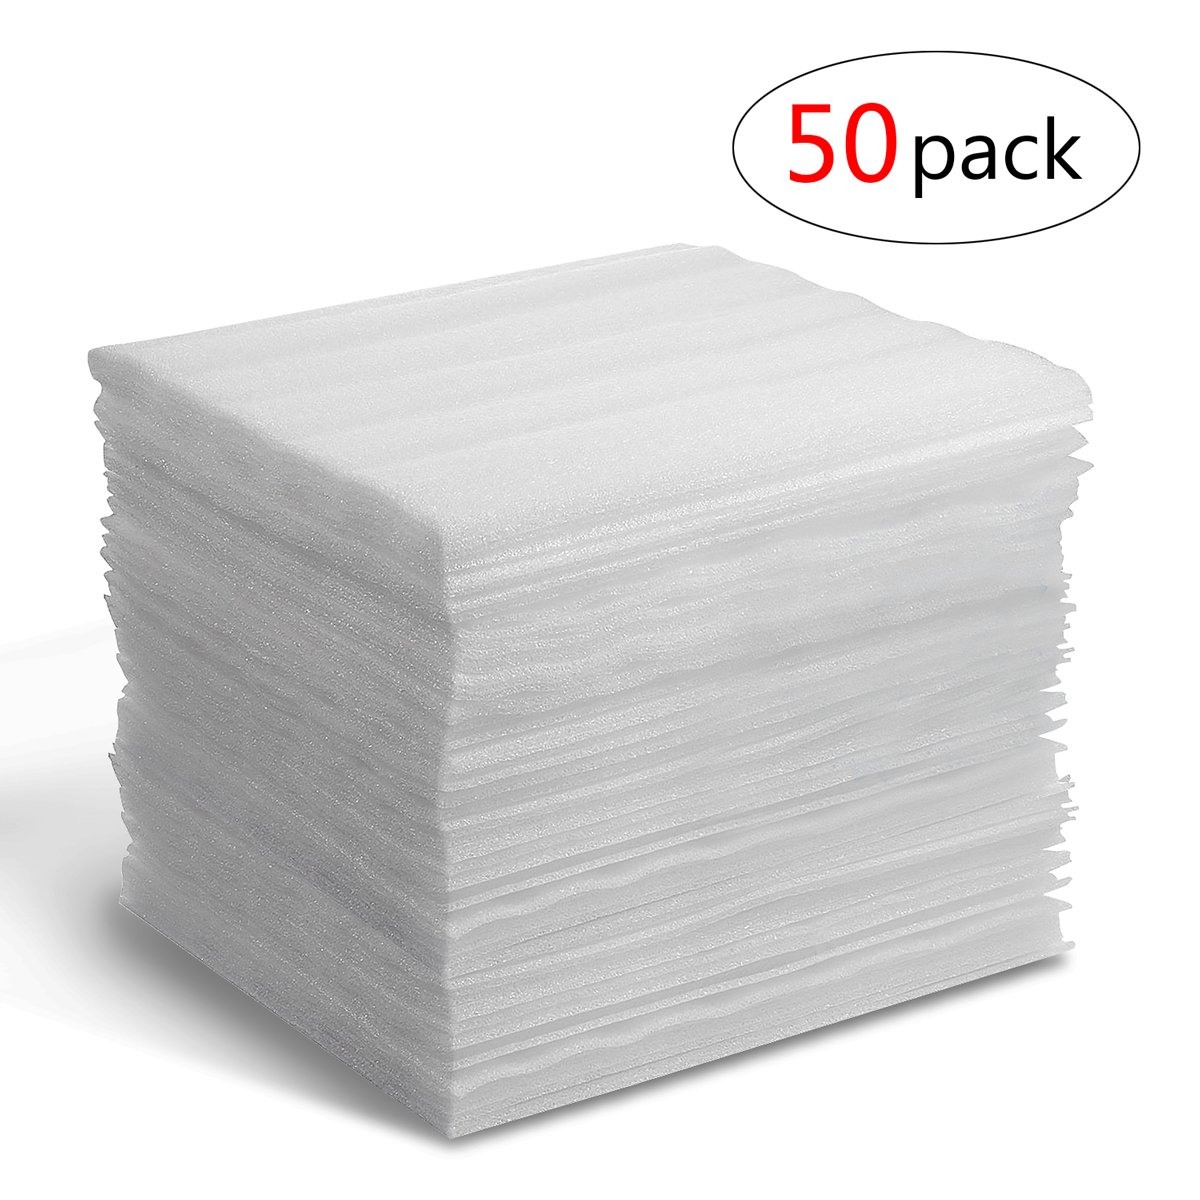 Cushion Foam Sheets Foam Wrap Sheets Epe Foam Sheets for Packing and Moving Supplies,Protecting Fragile Valuables 13.8'' X 12.9'' 50 Count